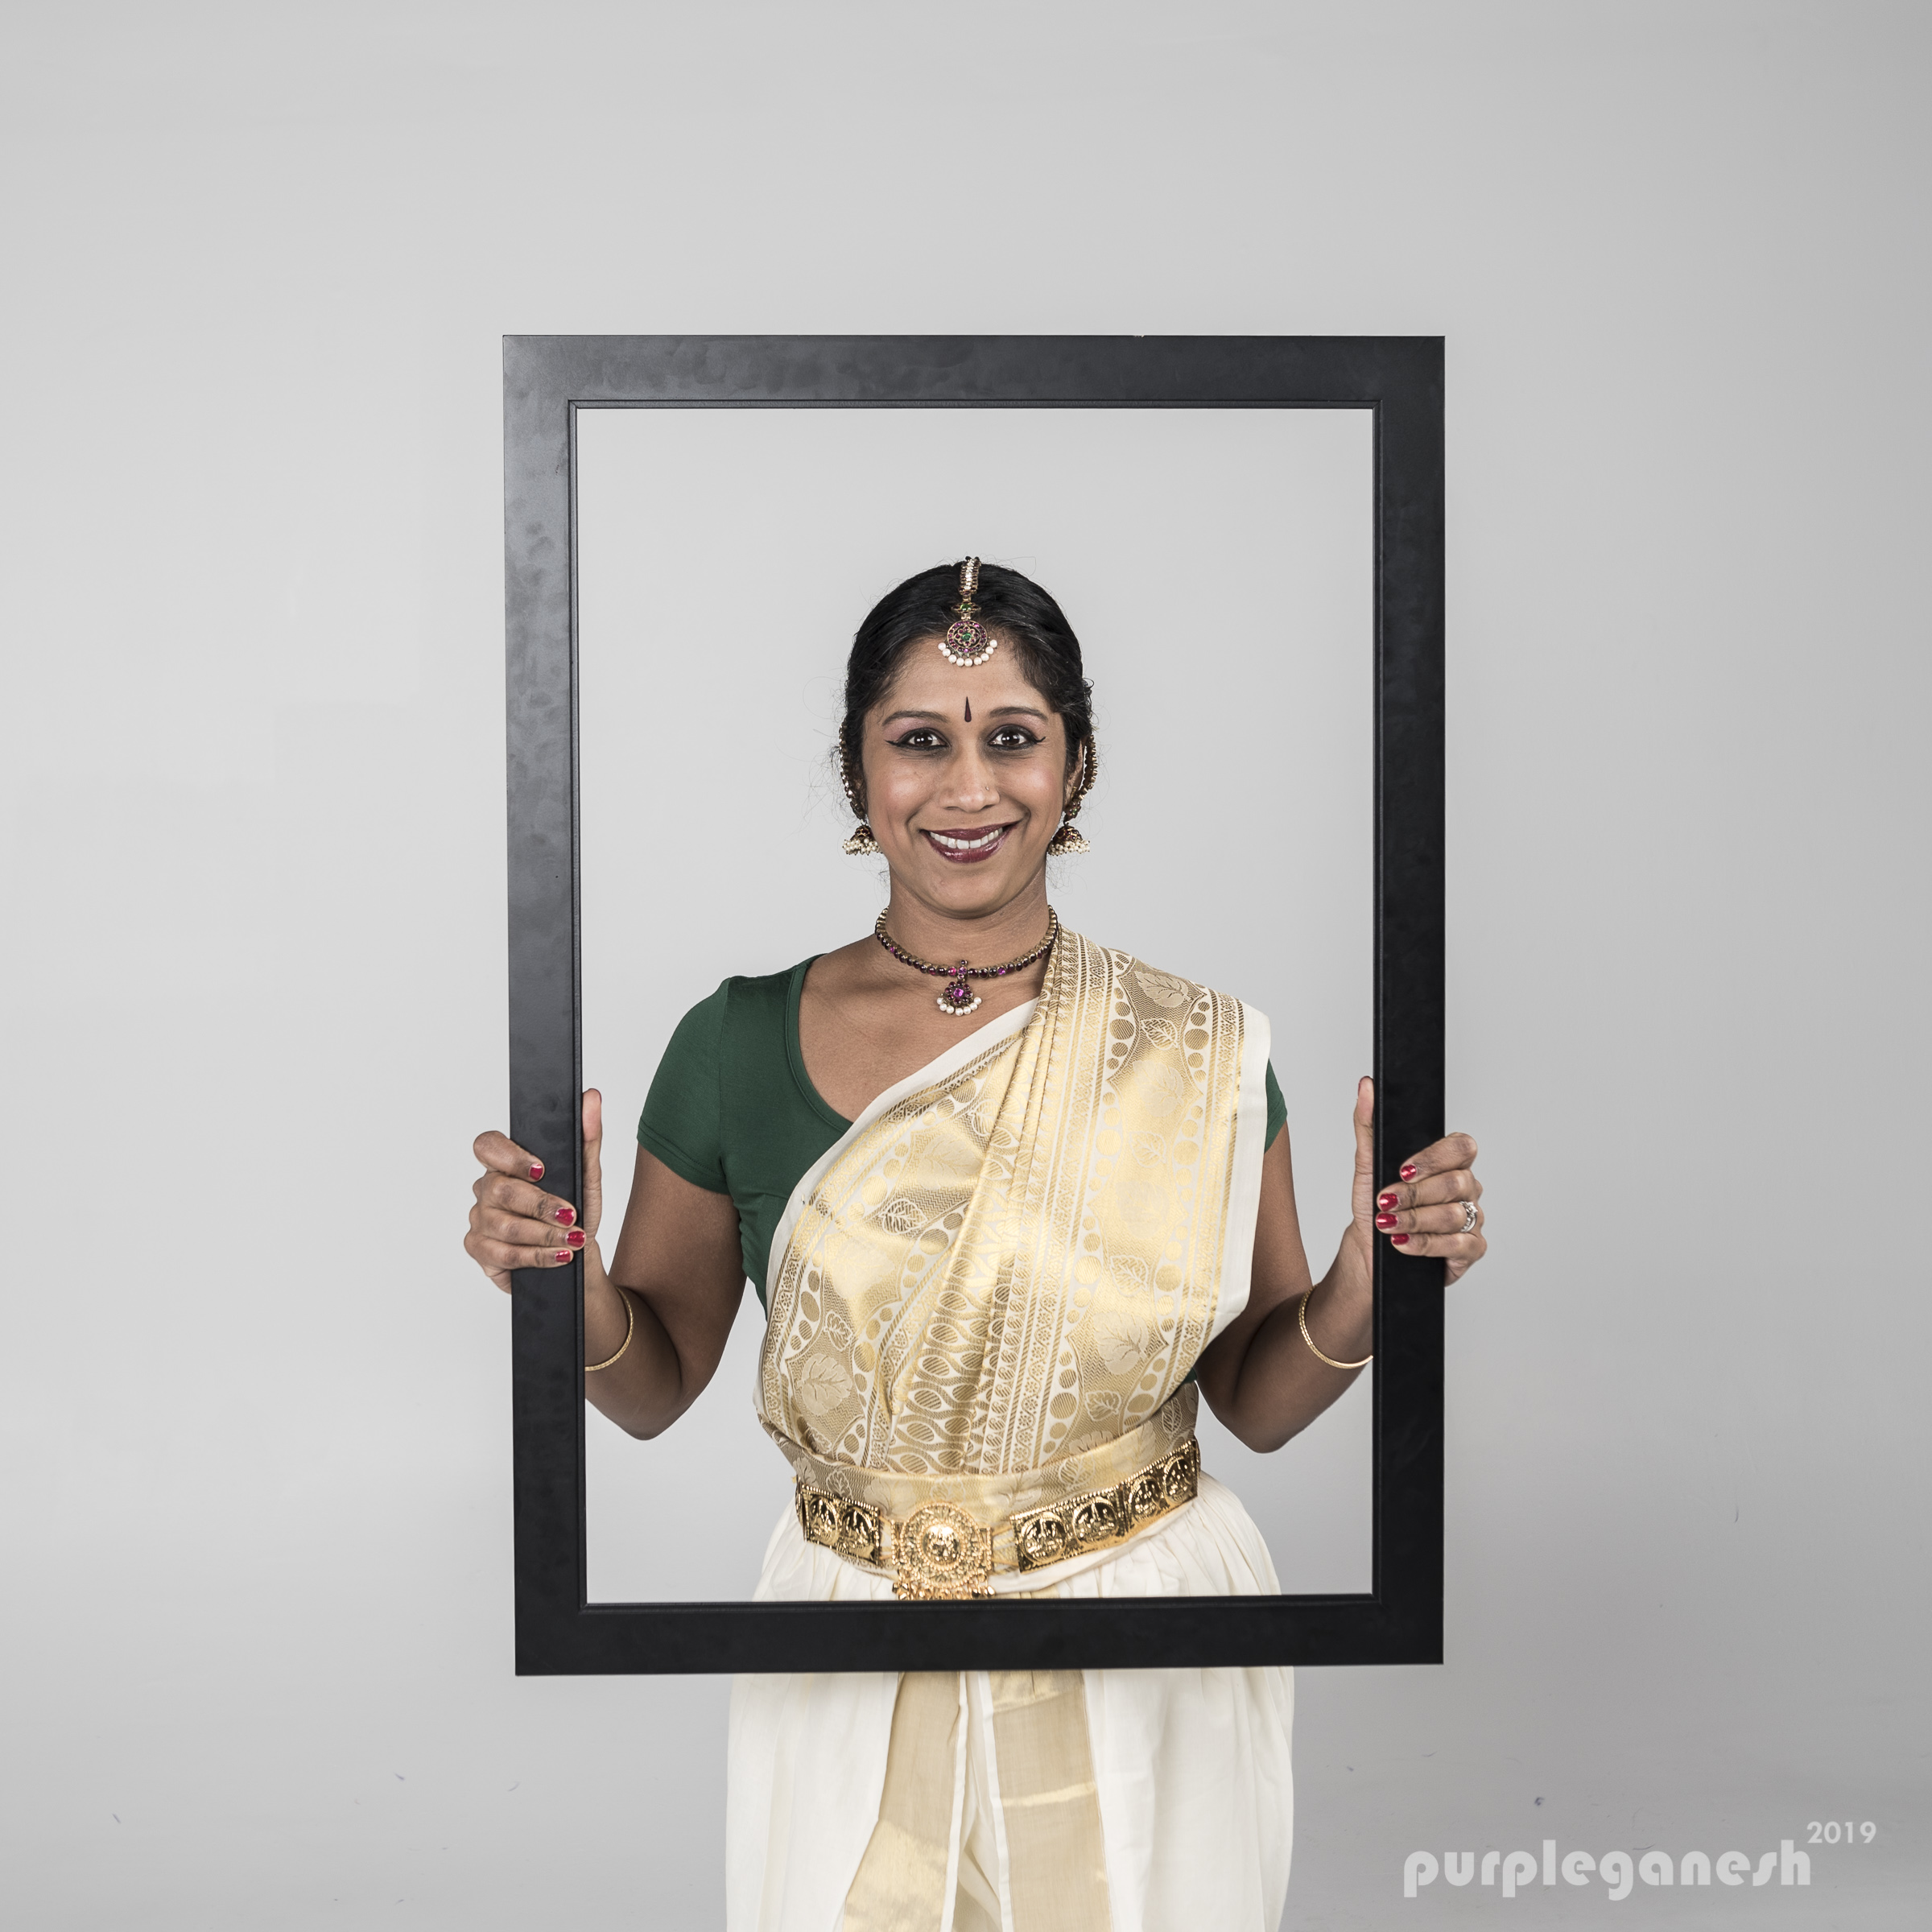 Usha Narayana - reconnected with dance 3 years ago after learning from Sridevi Thirumalai and Jothi Raghavan as a young a girl for many years. She lives in Natick, MA with her two boys and husband Allan. In her professional life, she is Head of Checking & Fees at Citizens Bank. Usha has danced with NATyA Dance Collective since 2015.